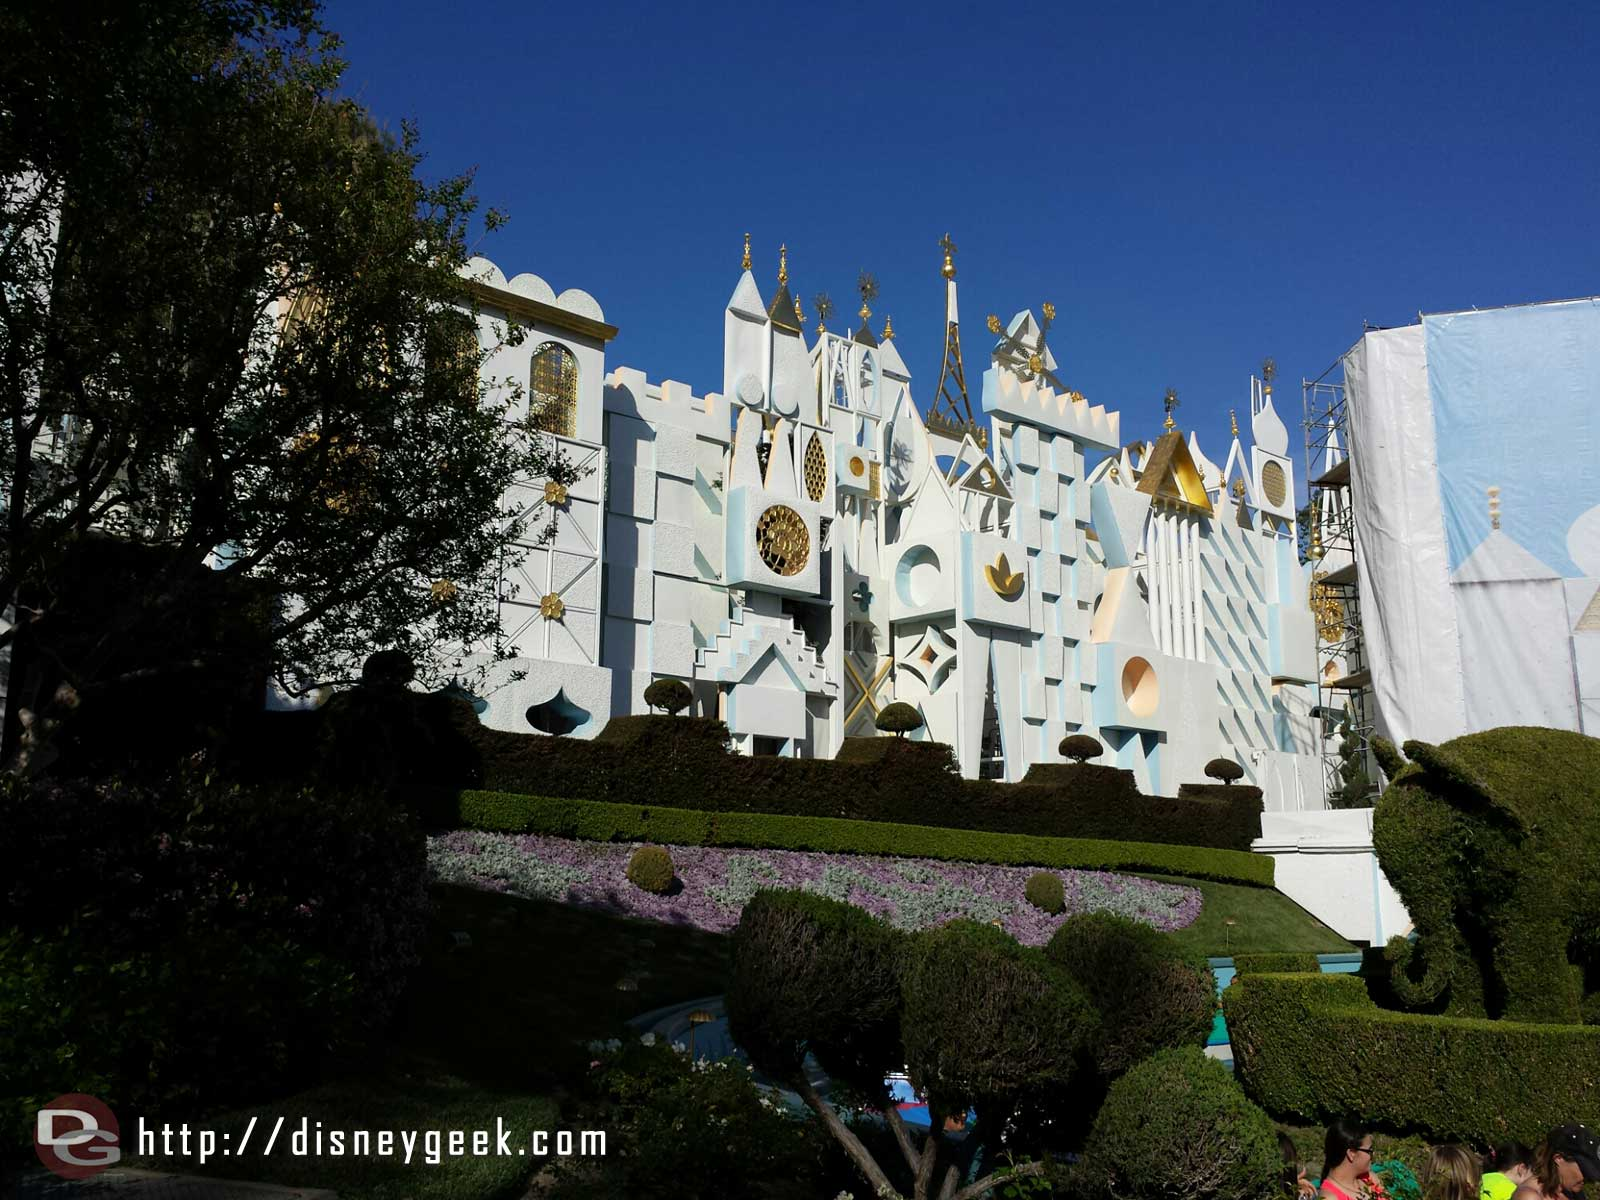 The scaffolding on the main building of it's a Small World has been removed since my last trip